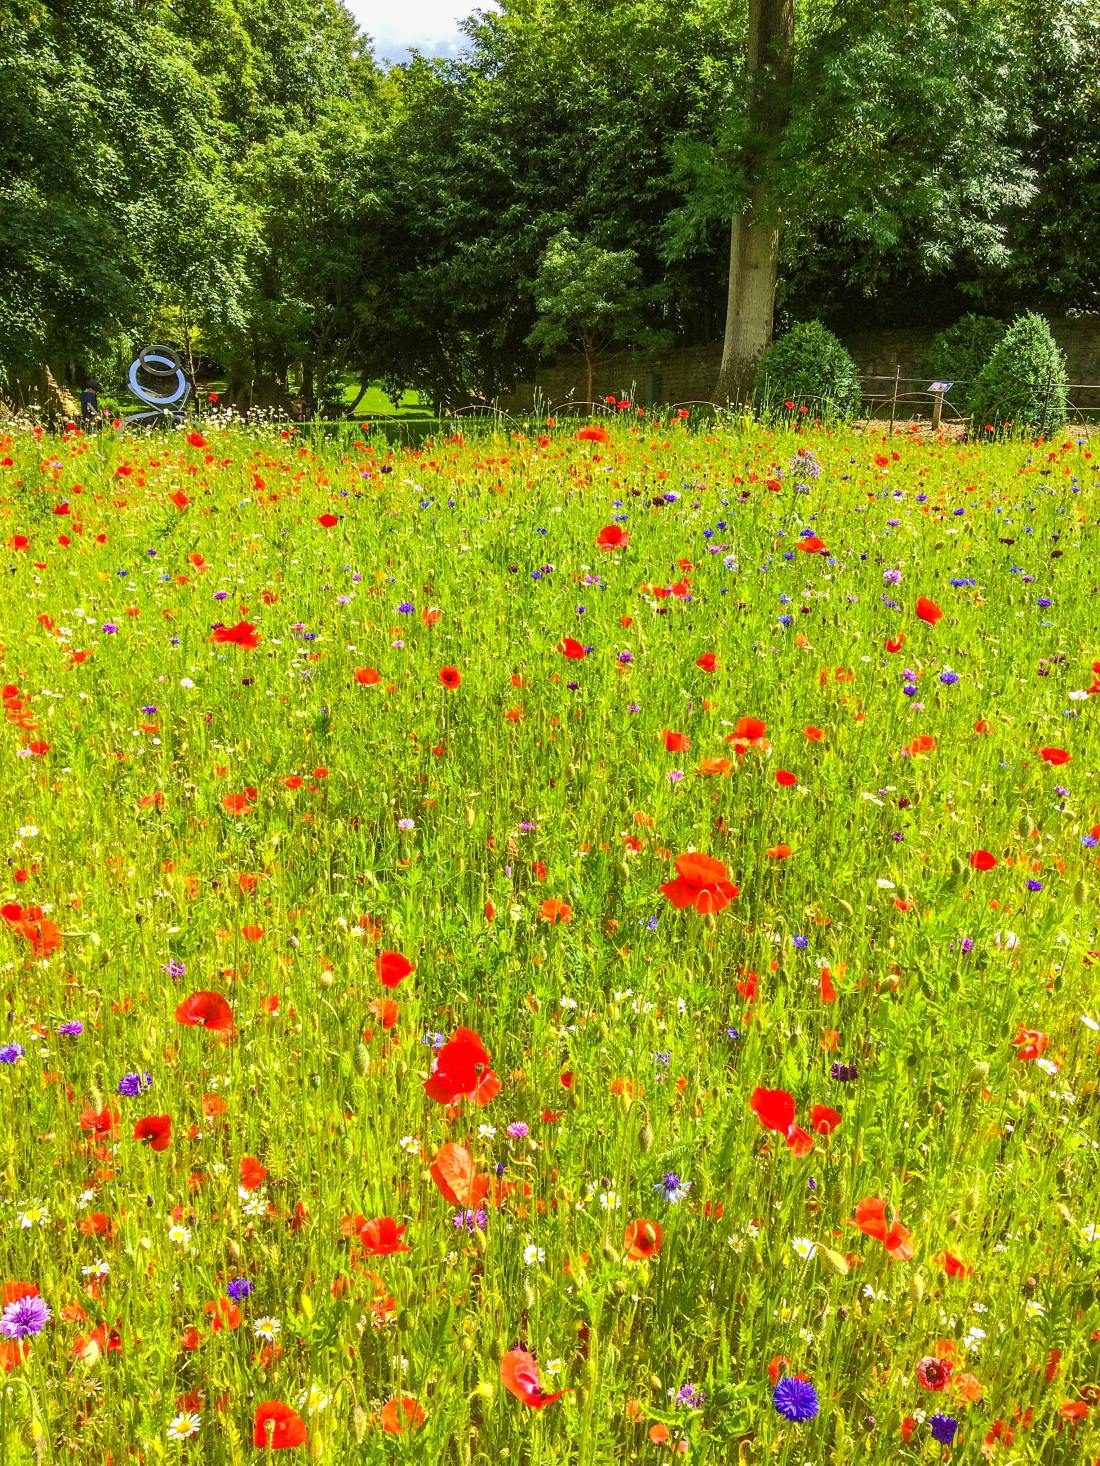 summer-grass-wild-poppies-red-flowers-3600057